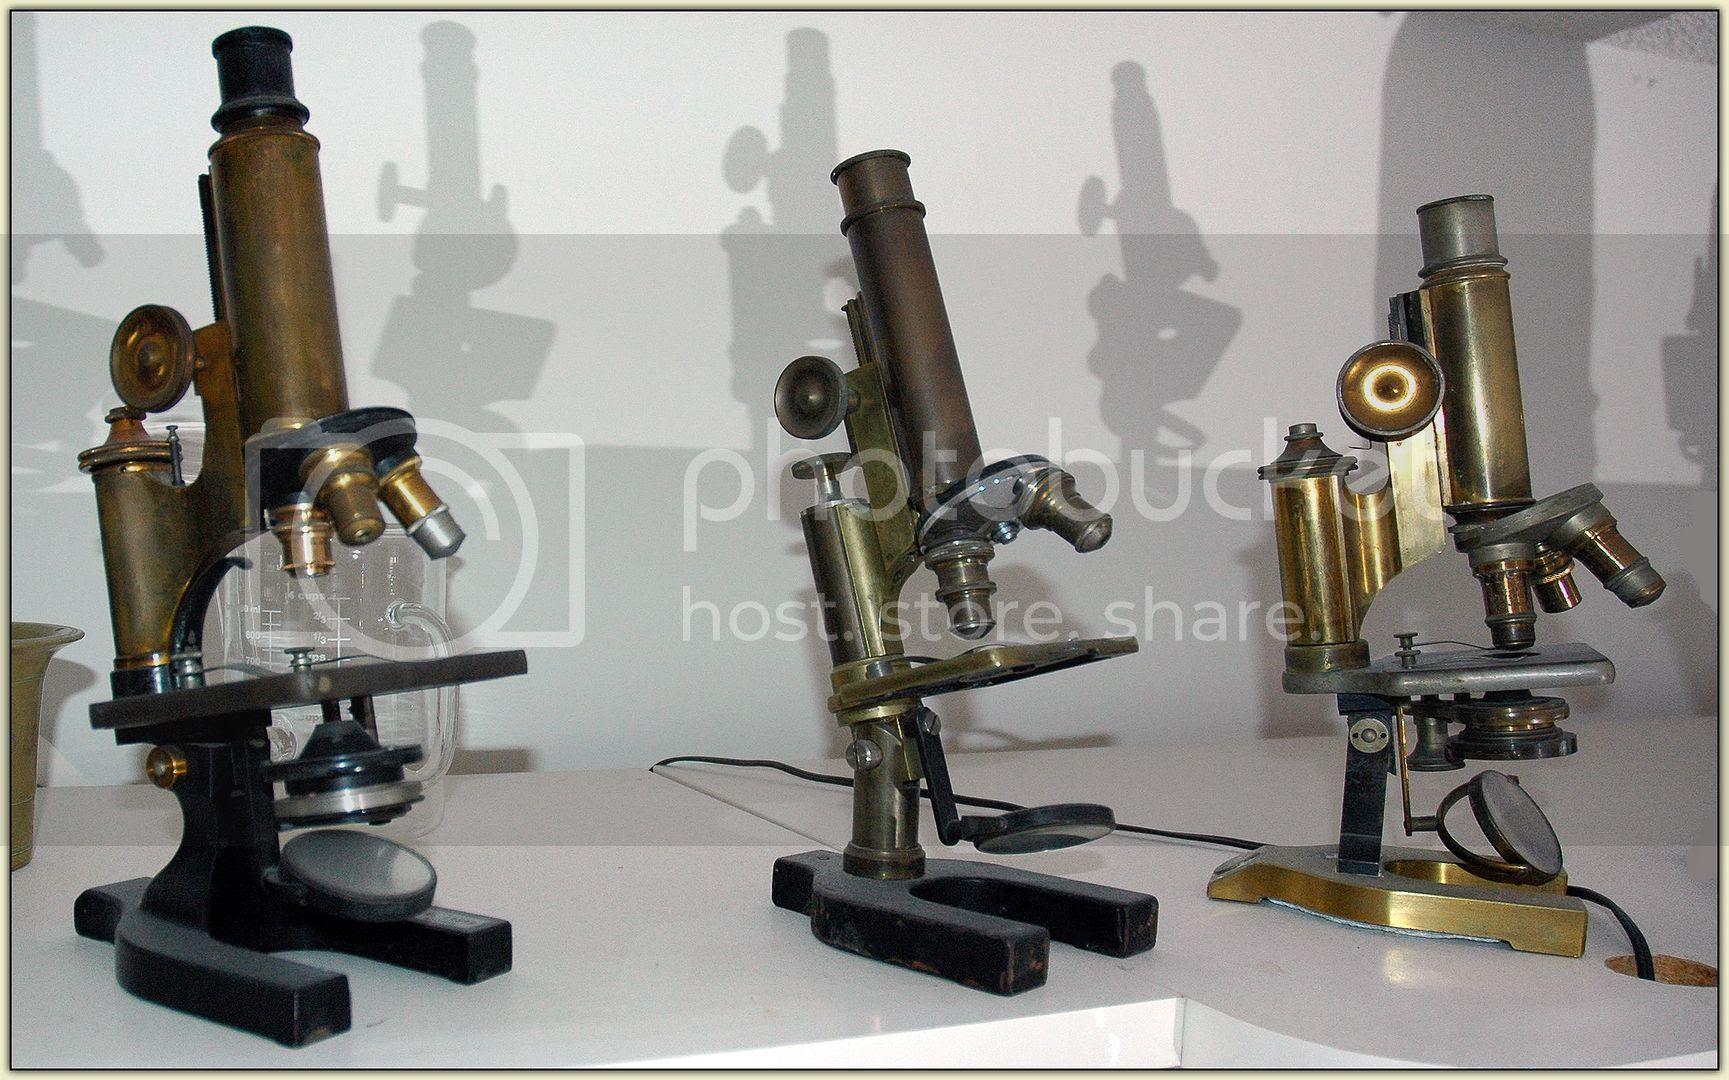 Antique Microscopes